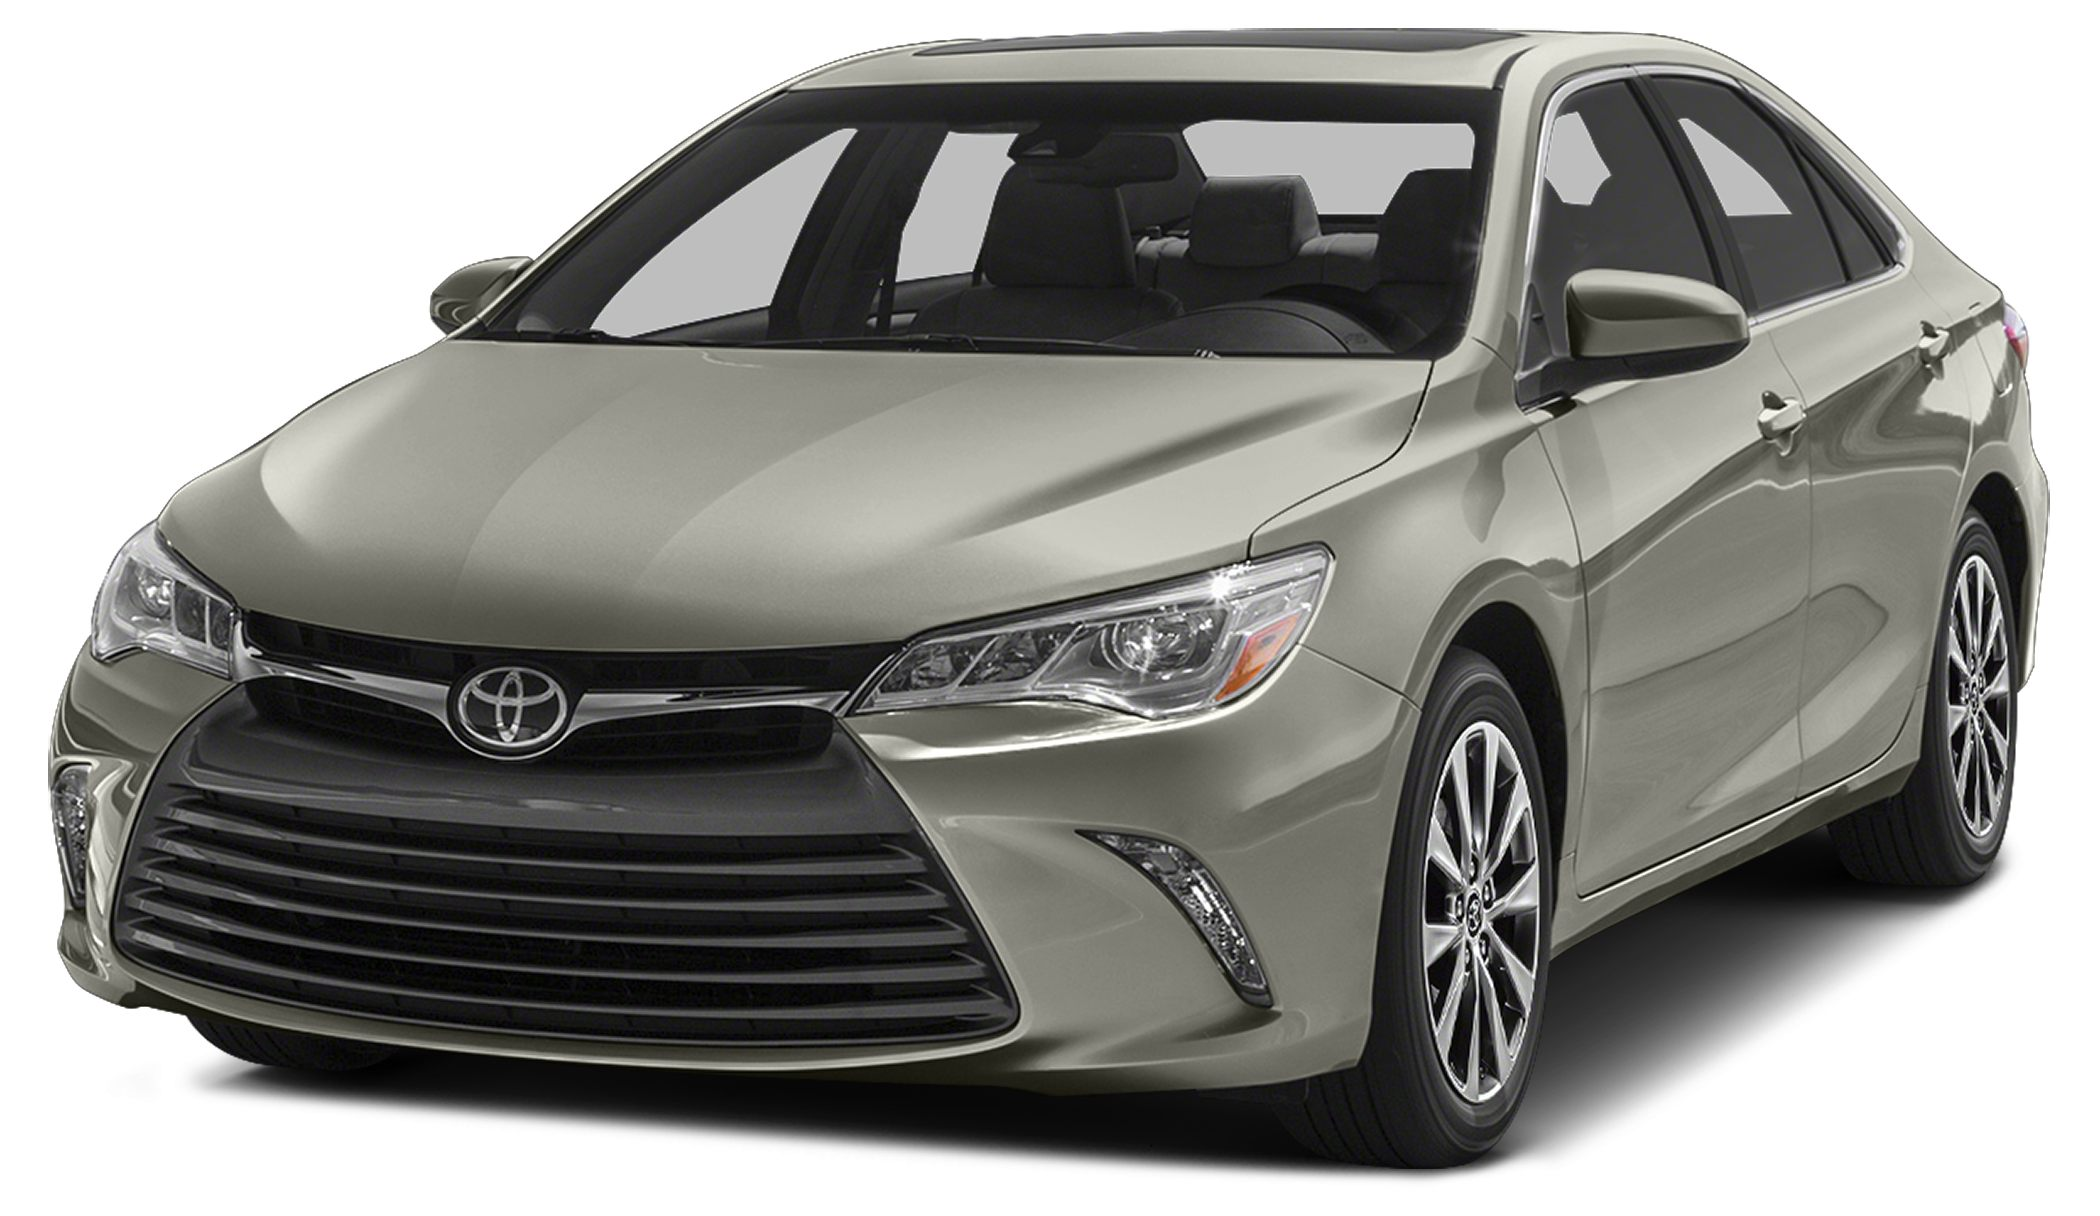 2015 Toyota Camry XLE CARFAX 1-Owner LOW MILES - 592 EPA 35 MPG Hwy25 MPG City XLE trim Heate